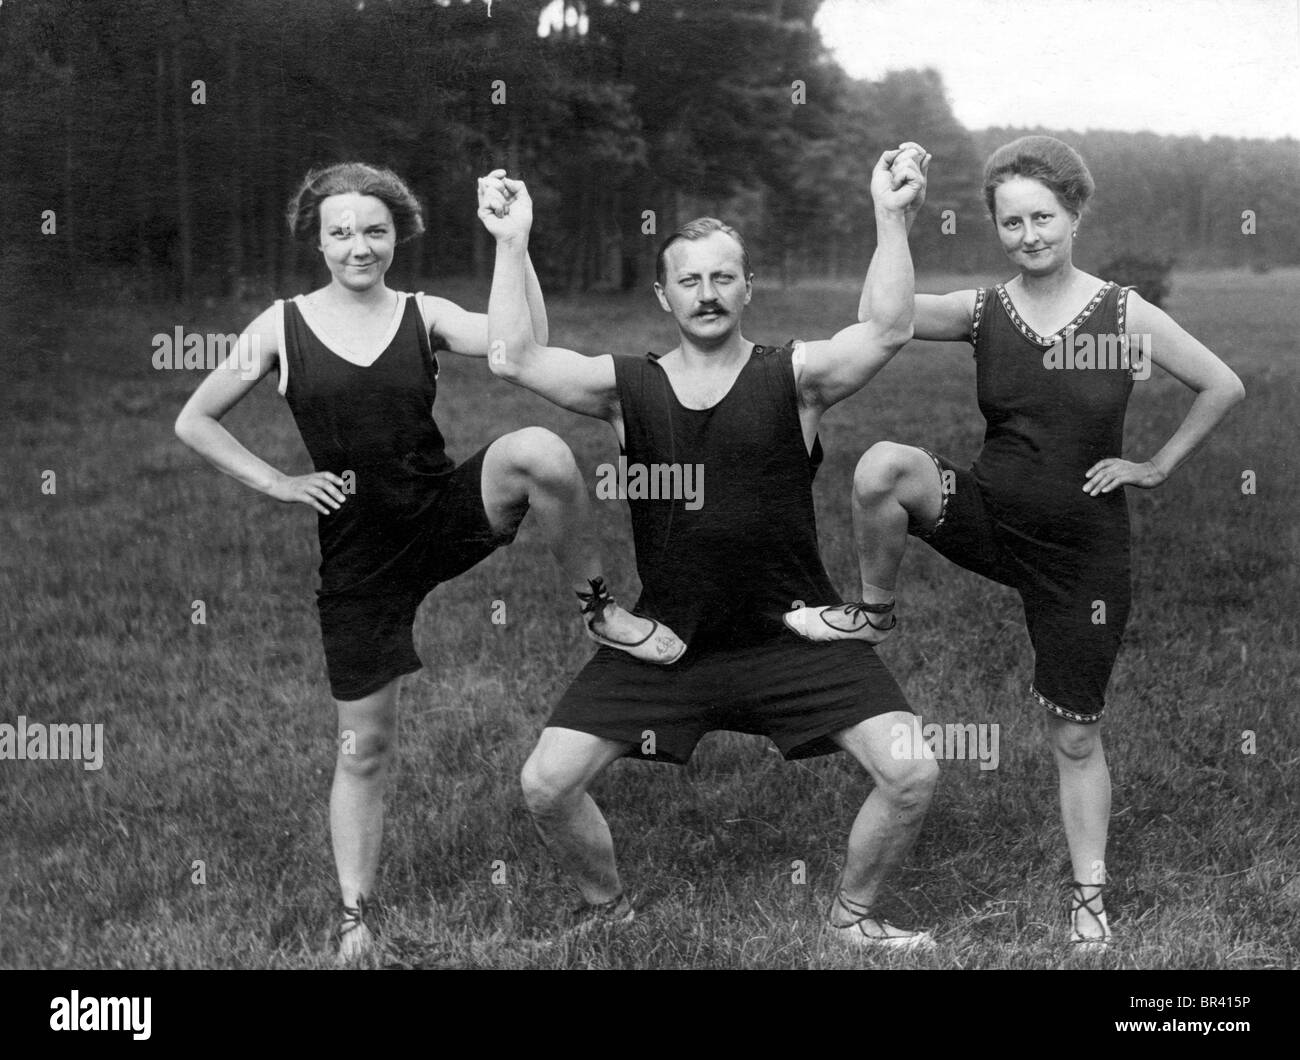 Historical image, man with two women wearing sporting outfits, ca. 1917 - Stock Image